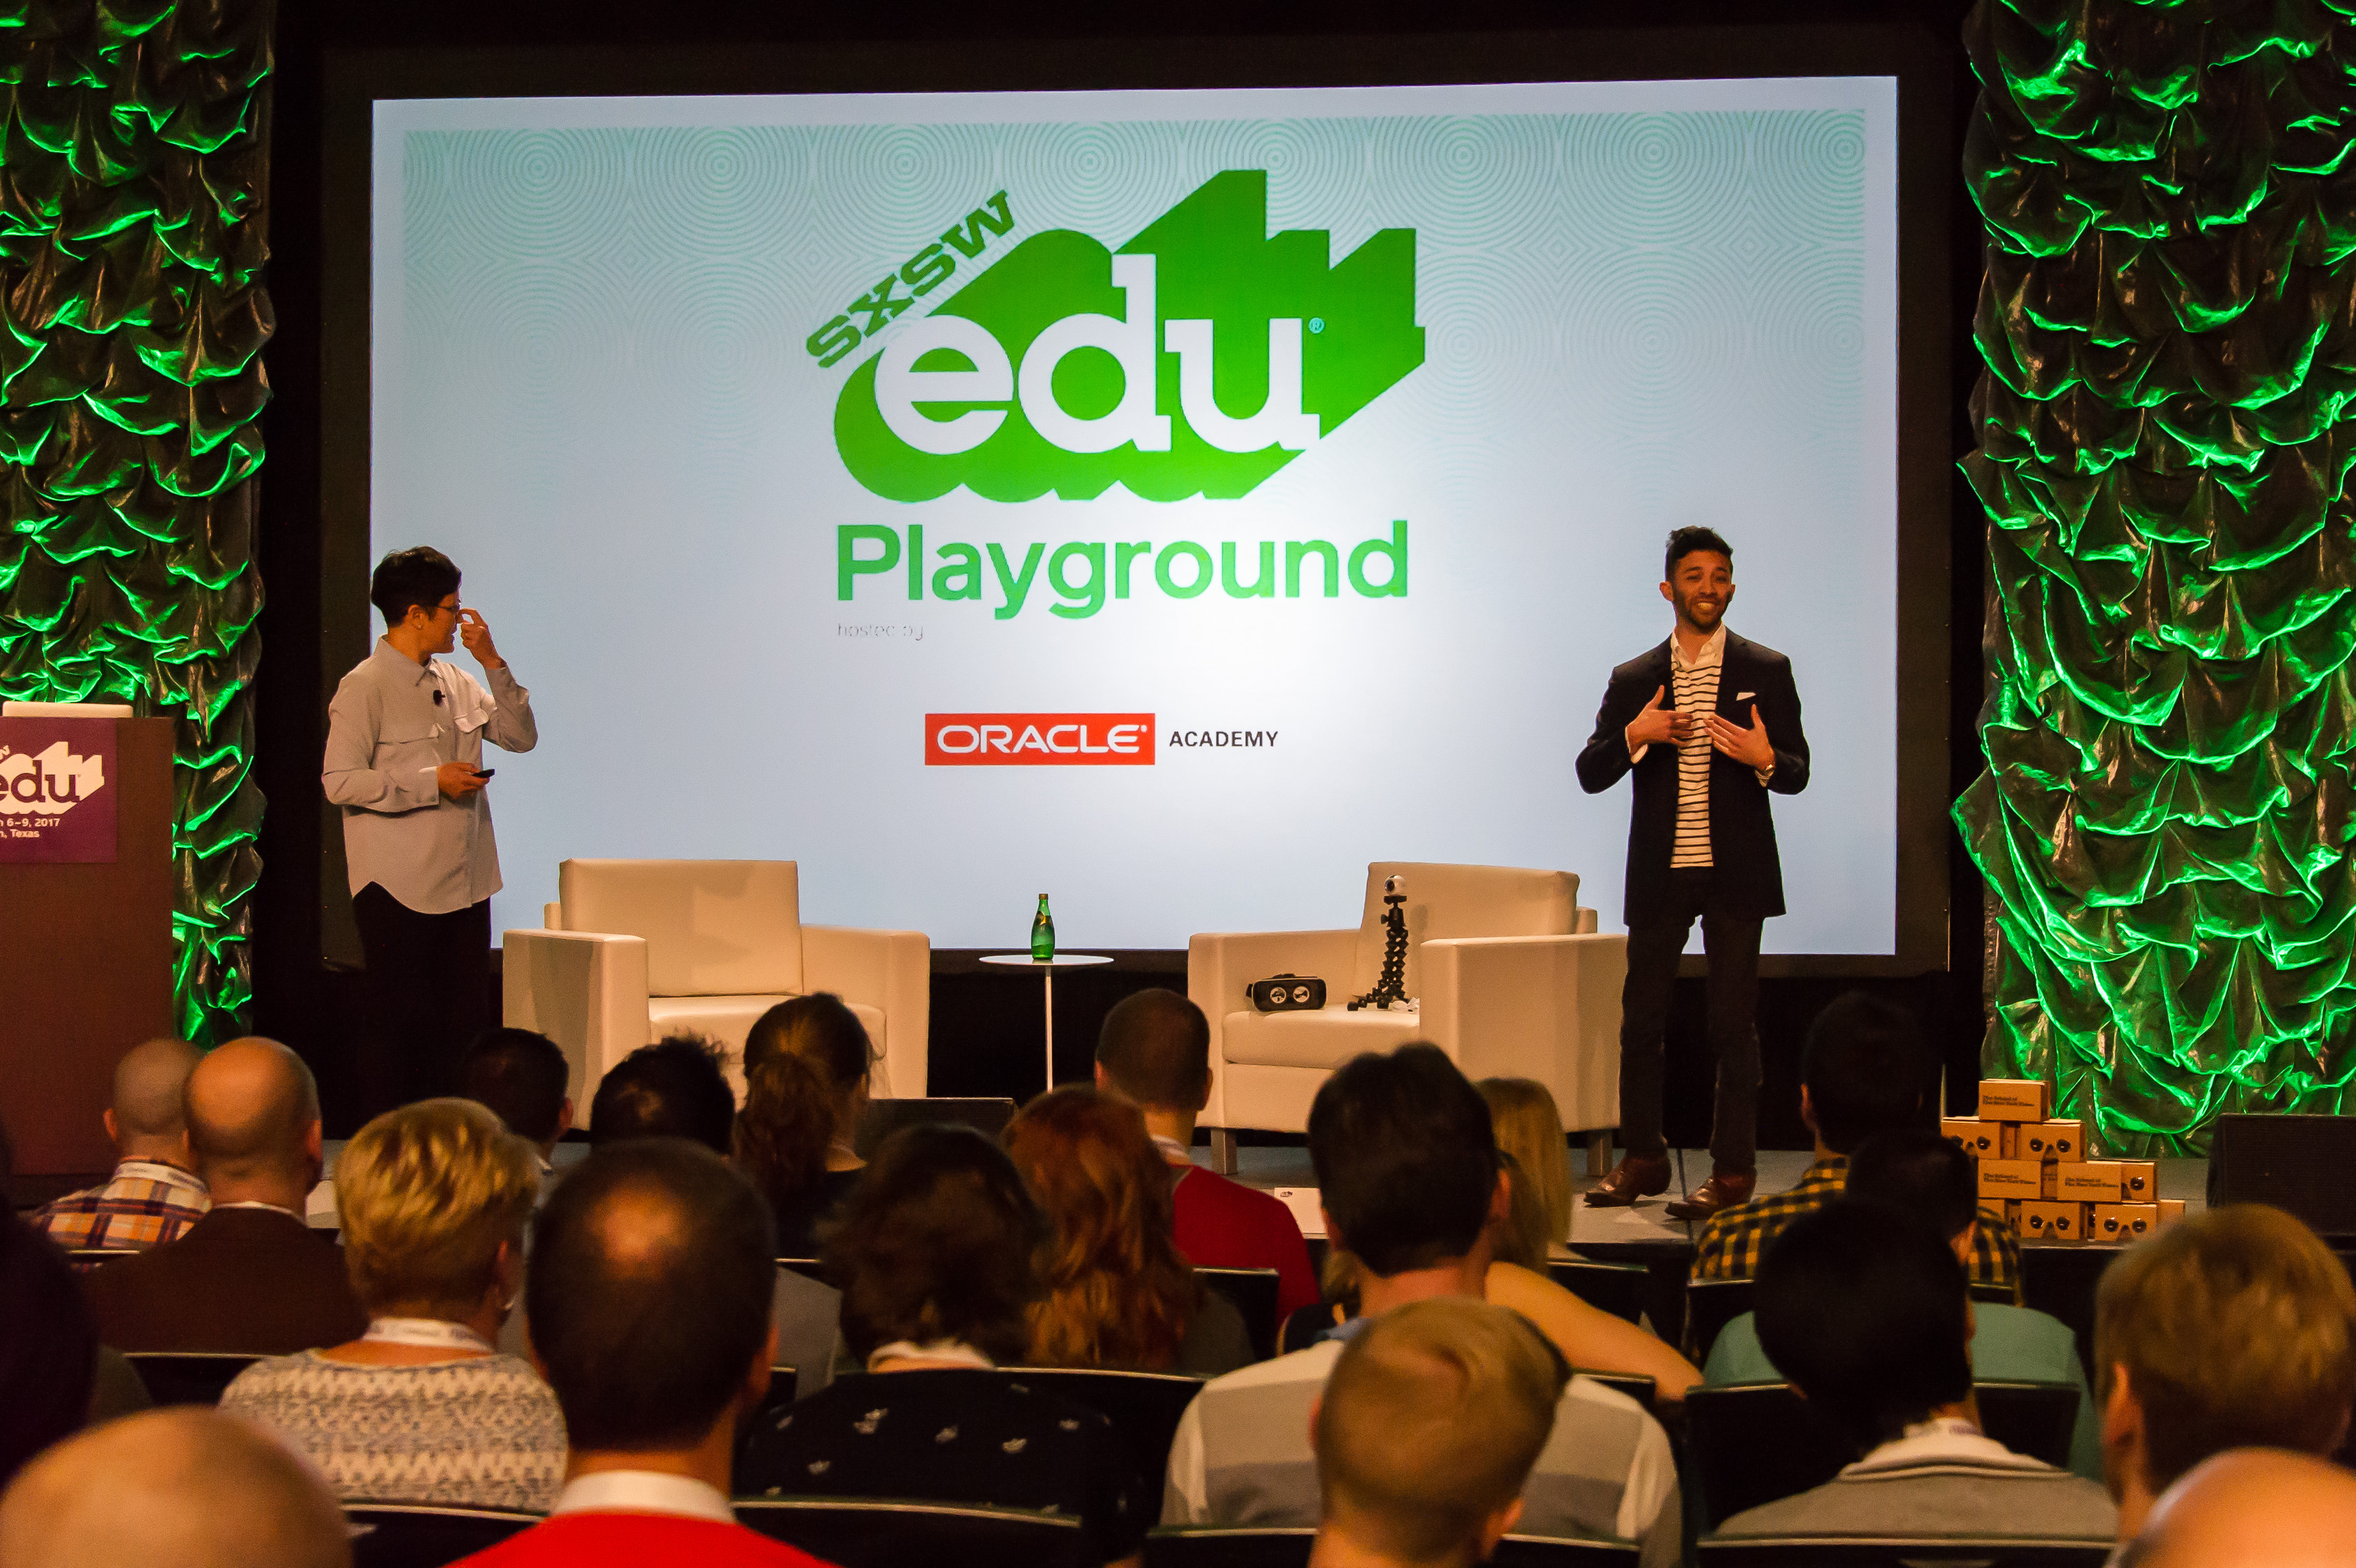 SXSW EDU 2017 Playground talk, Virtual Reality in Education -- Best Practices? Photo by David Rackley.